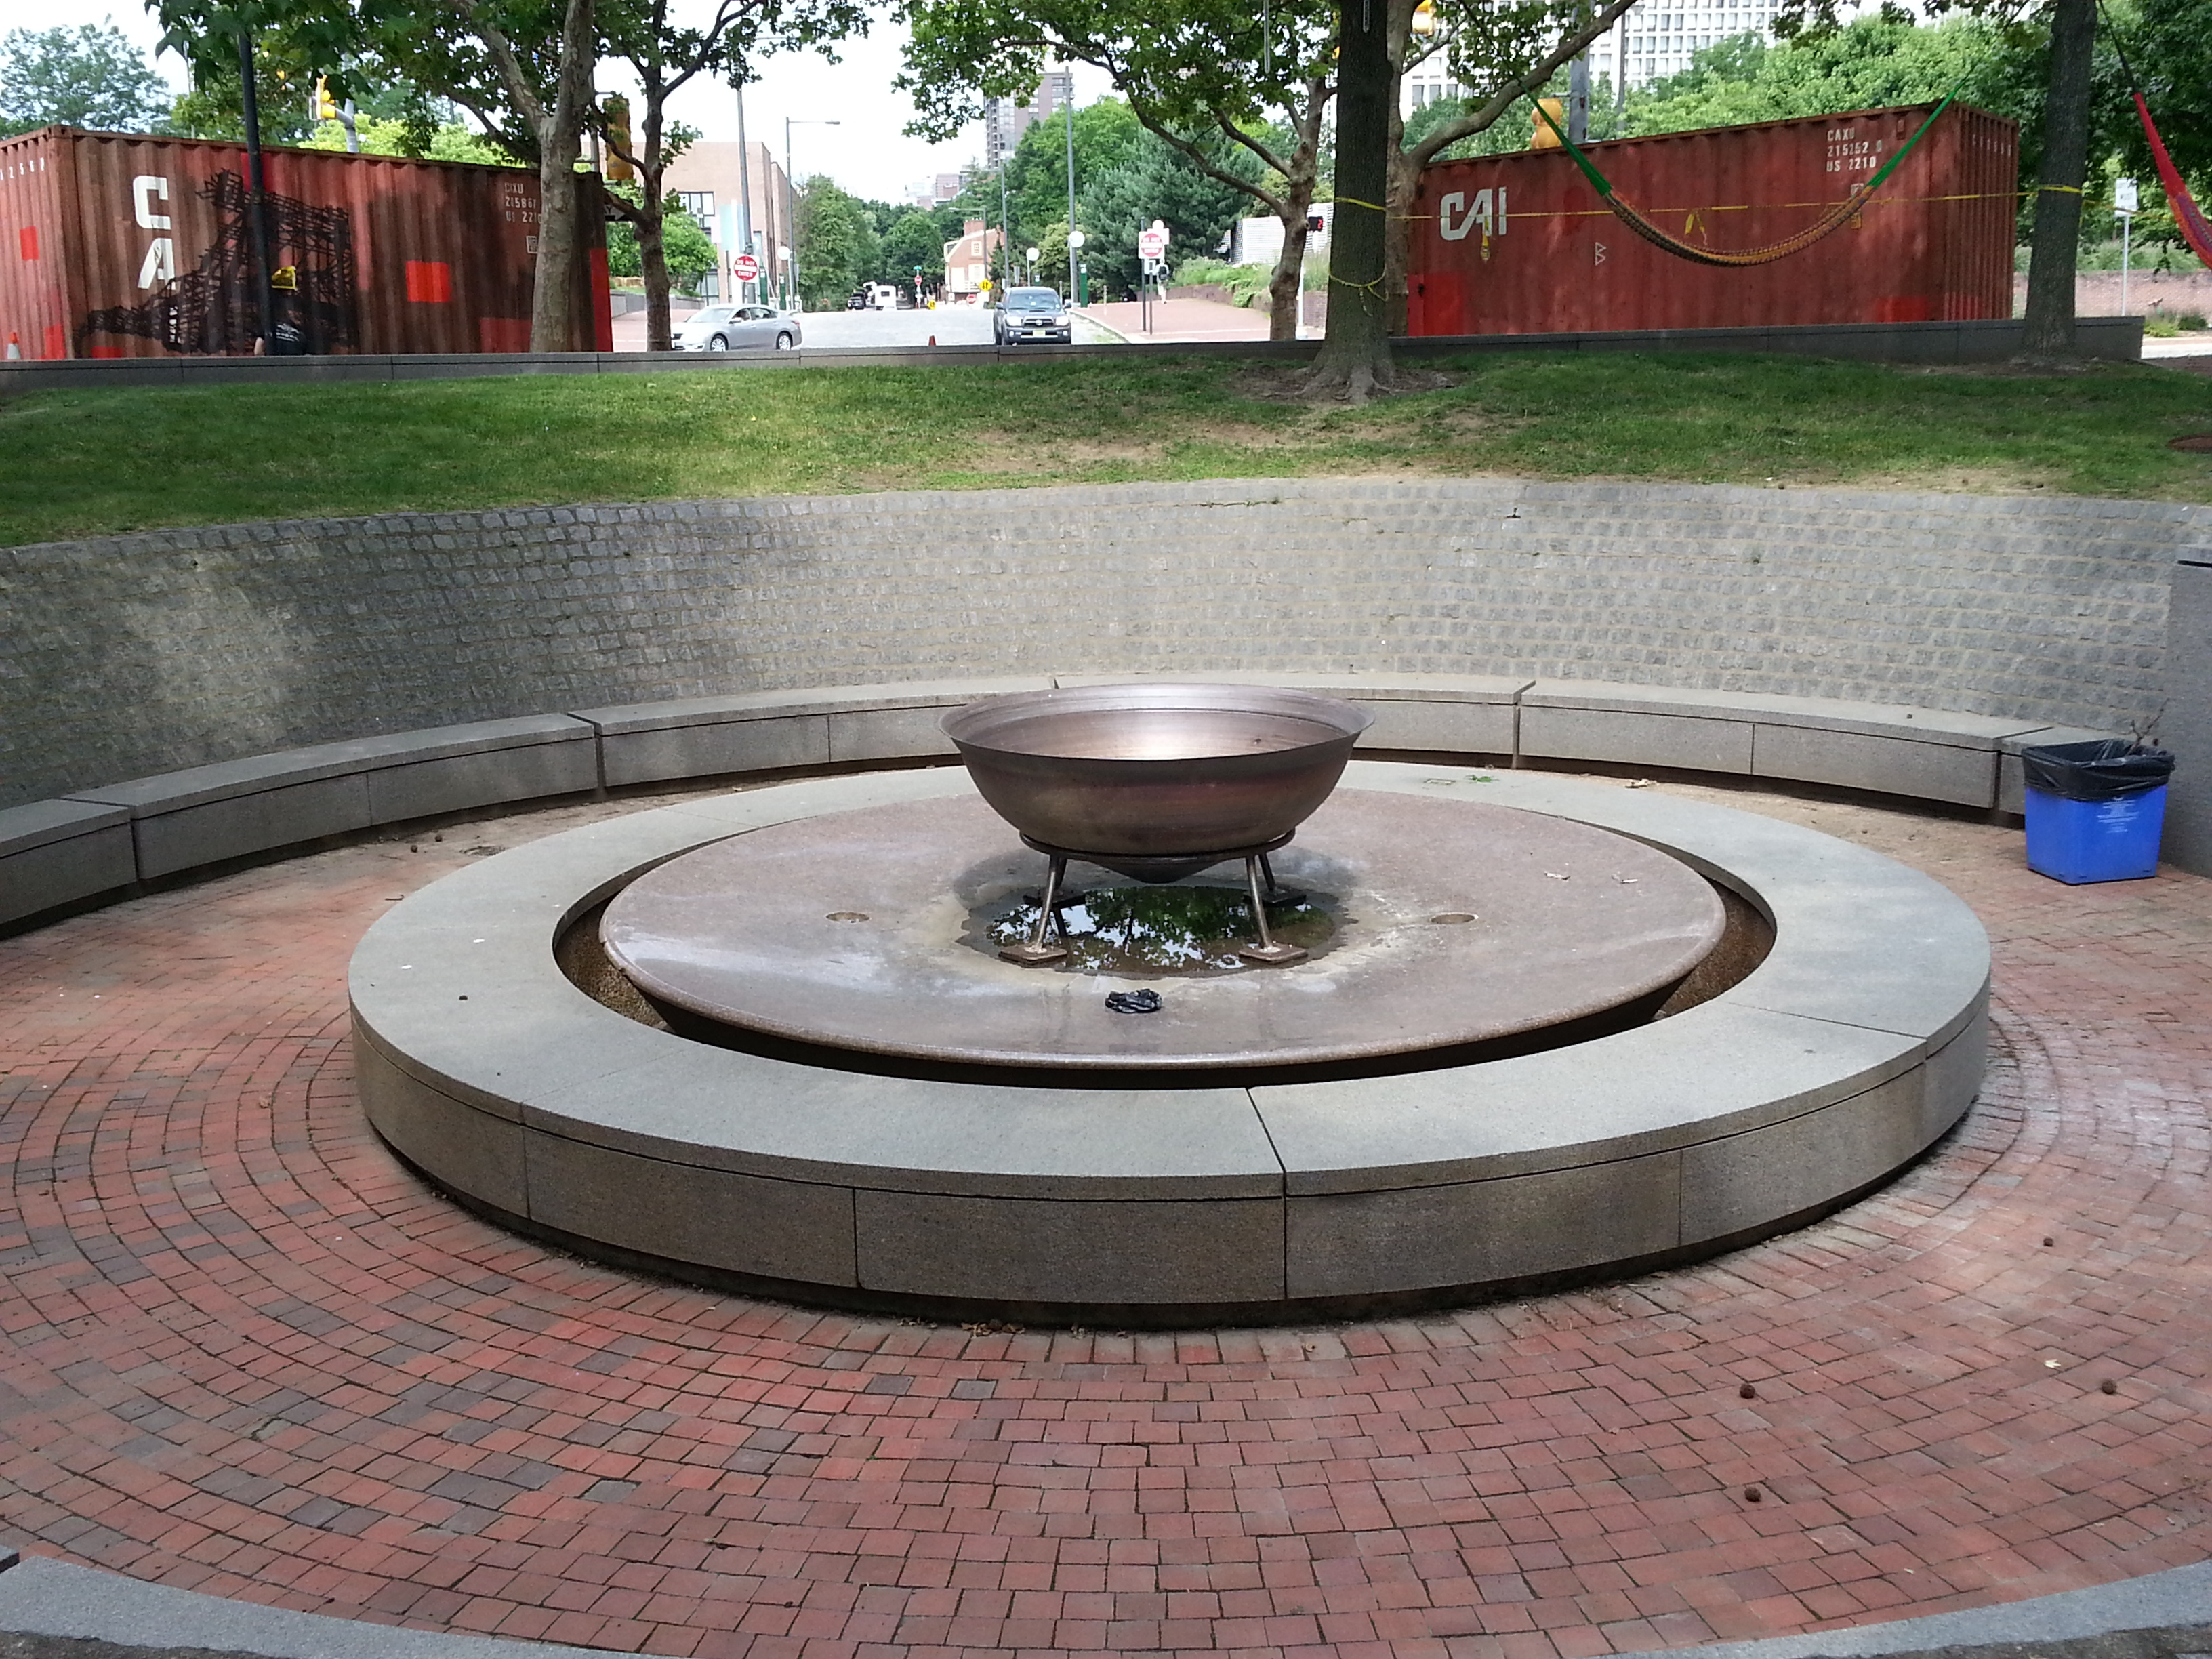 This old sculpture garden fountain will come to life for the first time in 15 years - with a new fire pit inside.